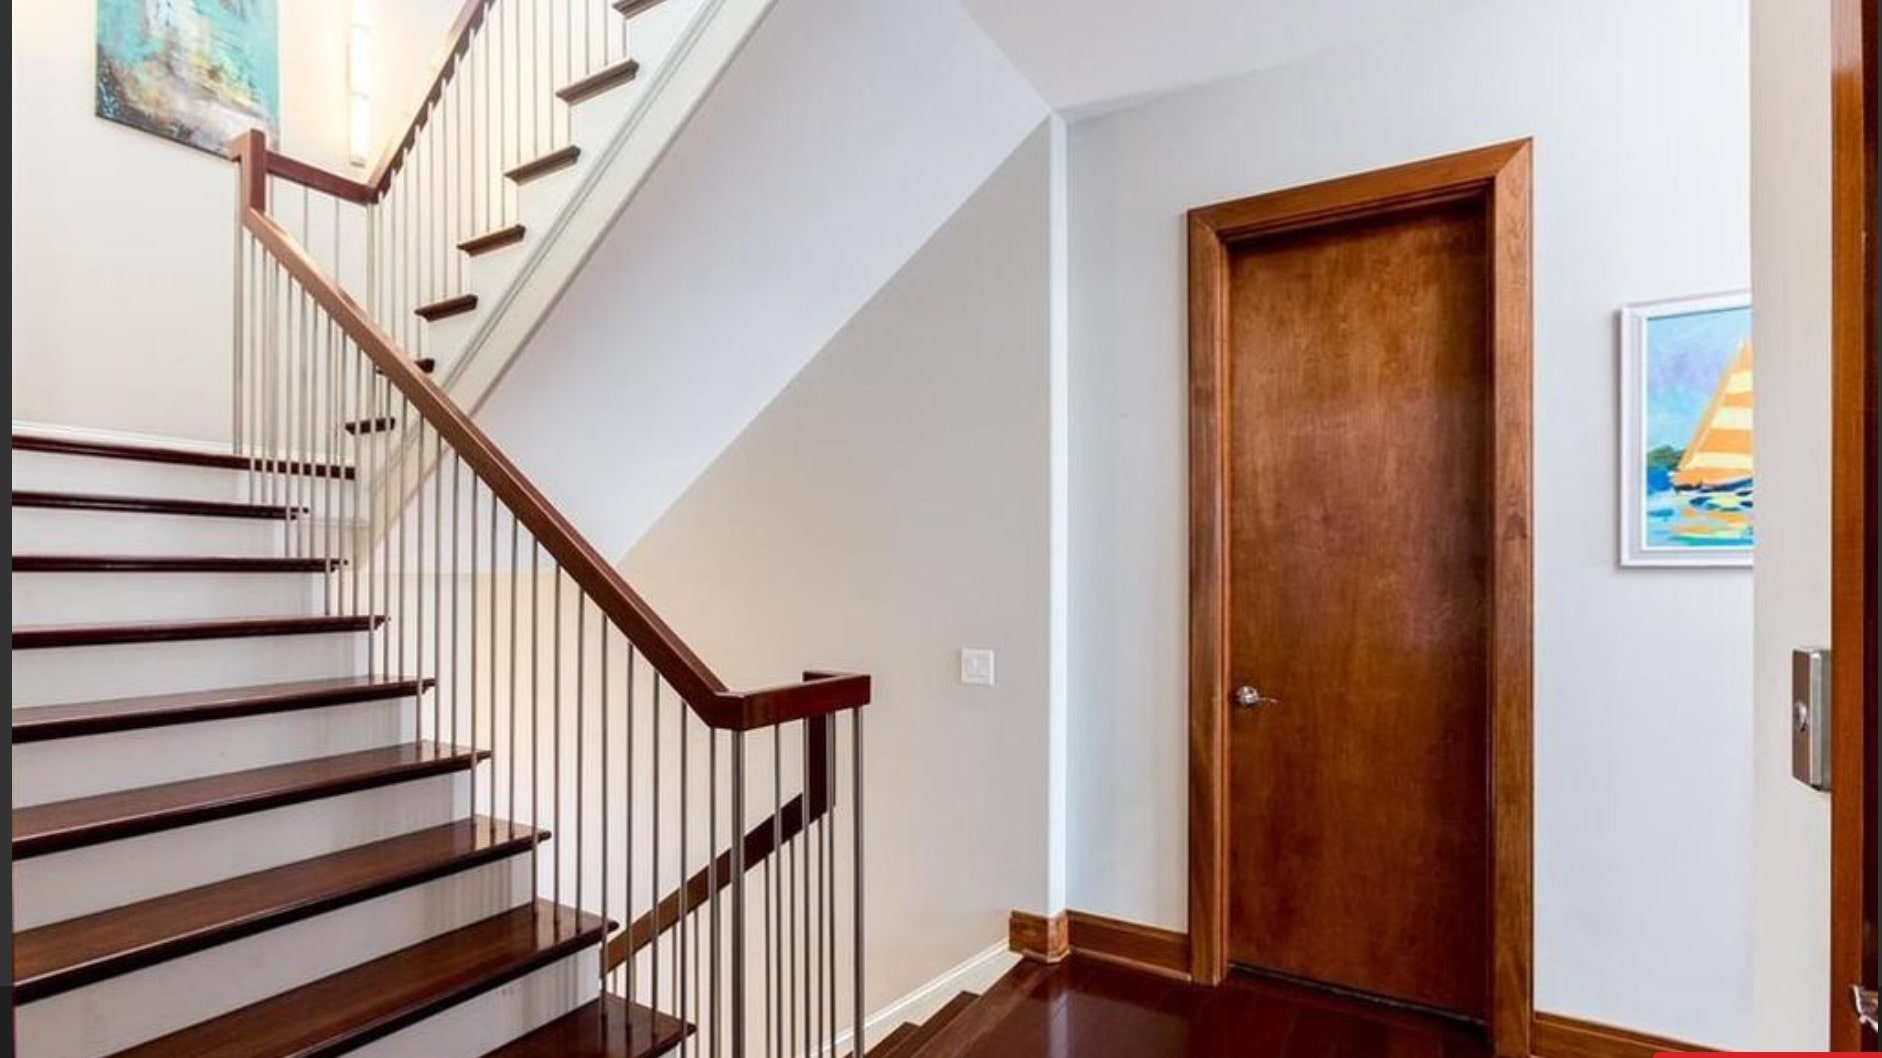 Gorgeous custom built staircase takes you to all levels of this home.